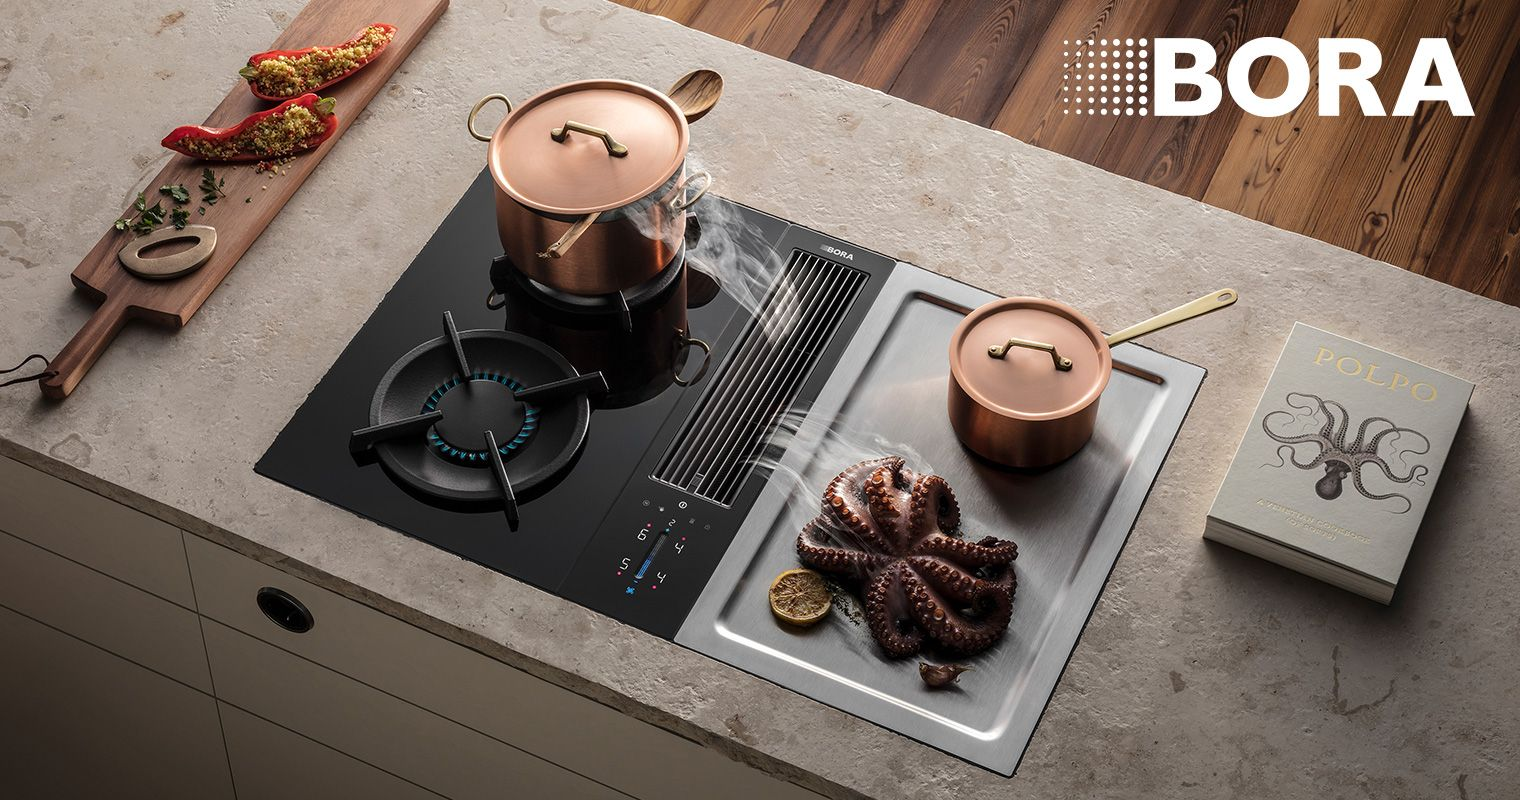 Bora Classic 2 Cooktop With Integrated Cooktop Extractor Piani Cottura Smoothie Fresh